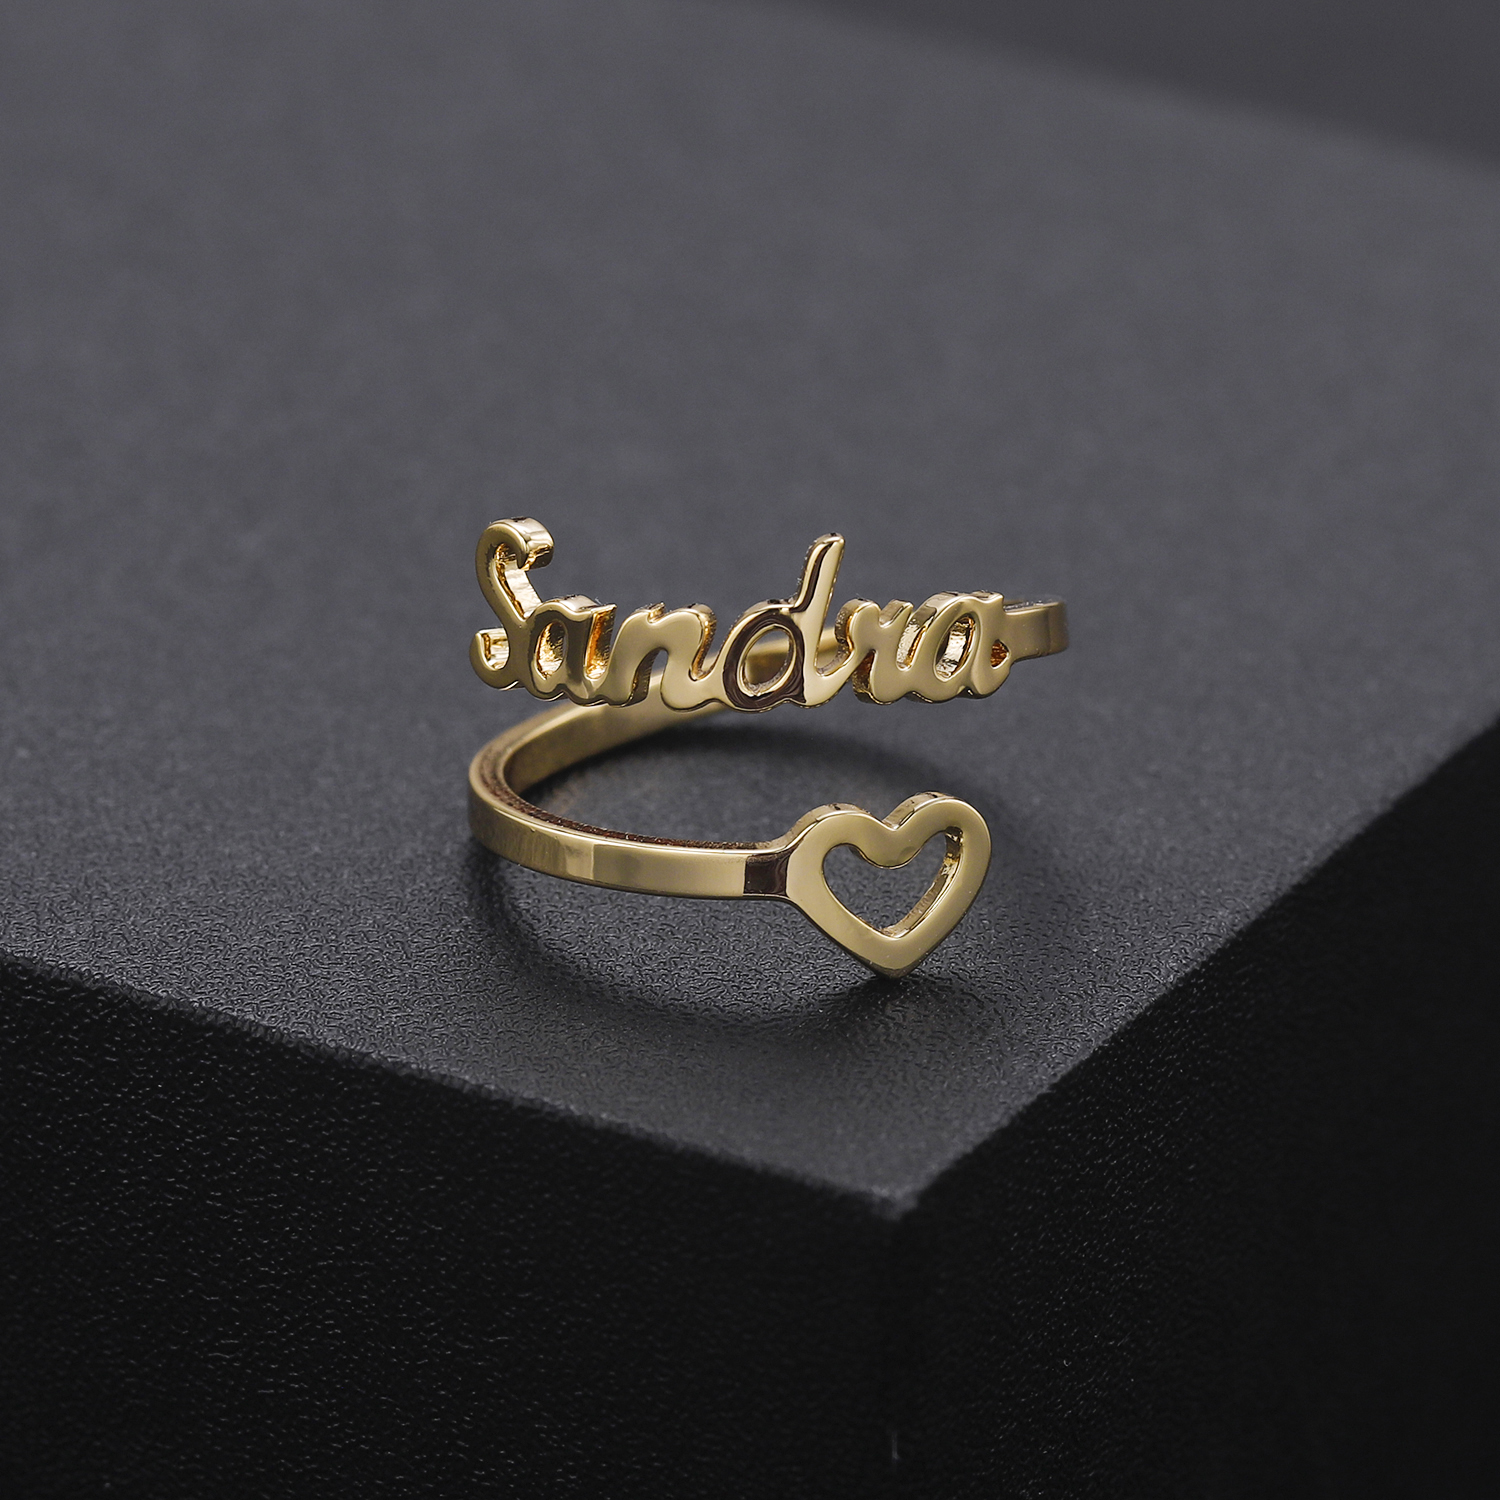 Personalized Hollow Love Name Rings Stainless Steel Adjustable Custom Women Rings Unique Wedding Ring Jewelry Girl Women Gifts